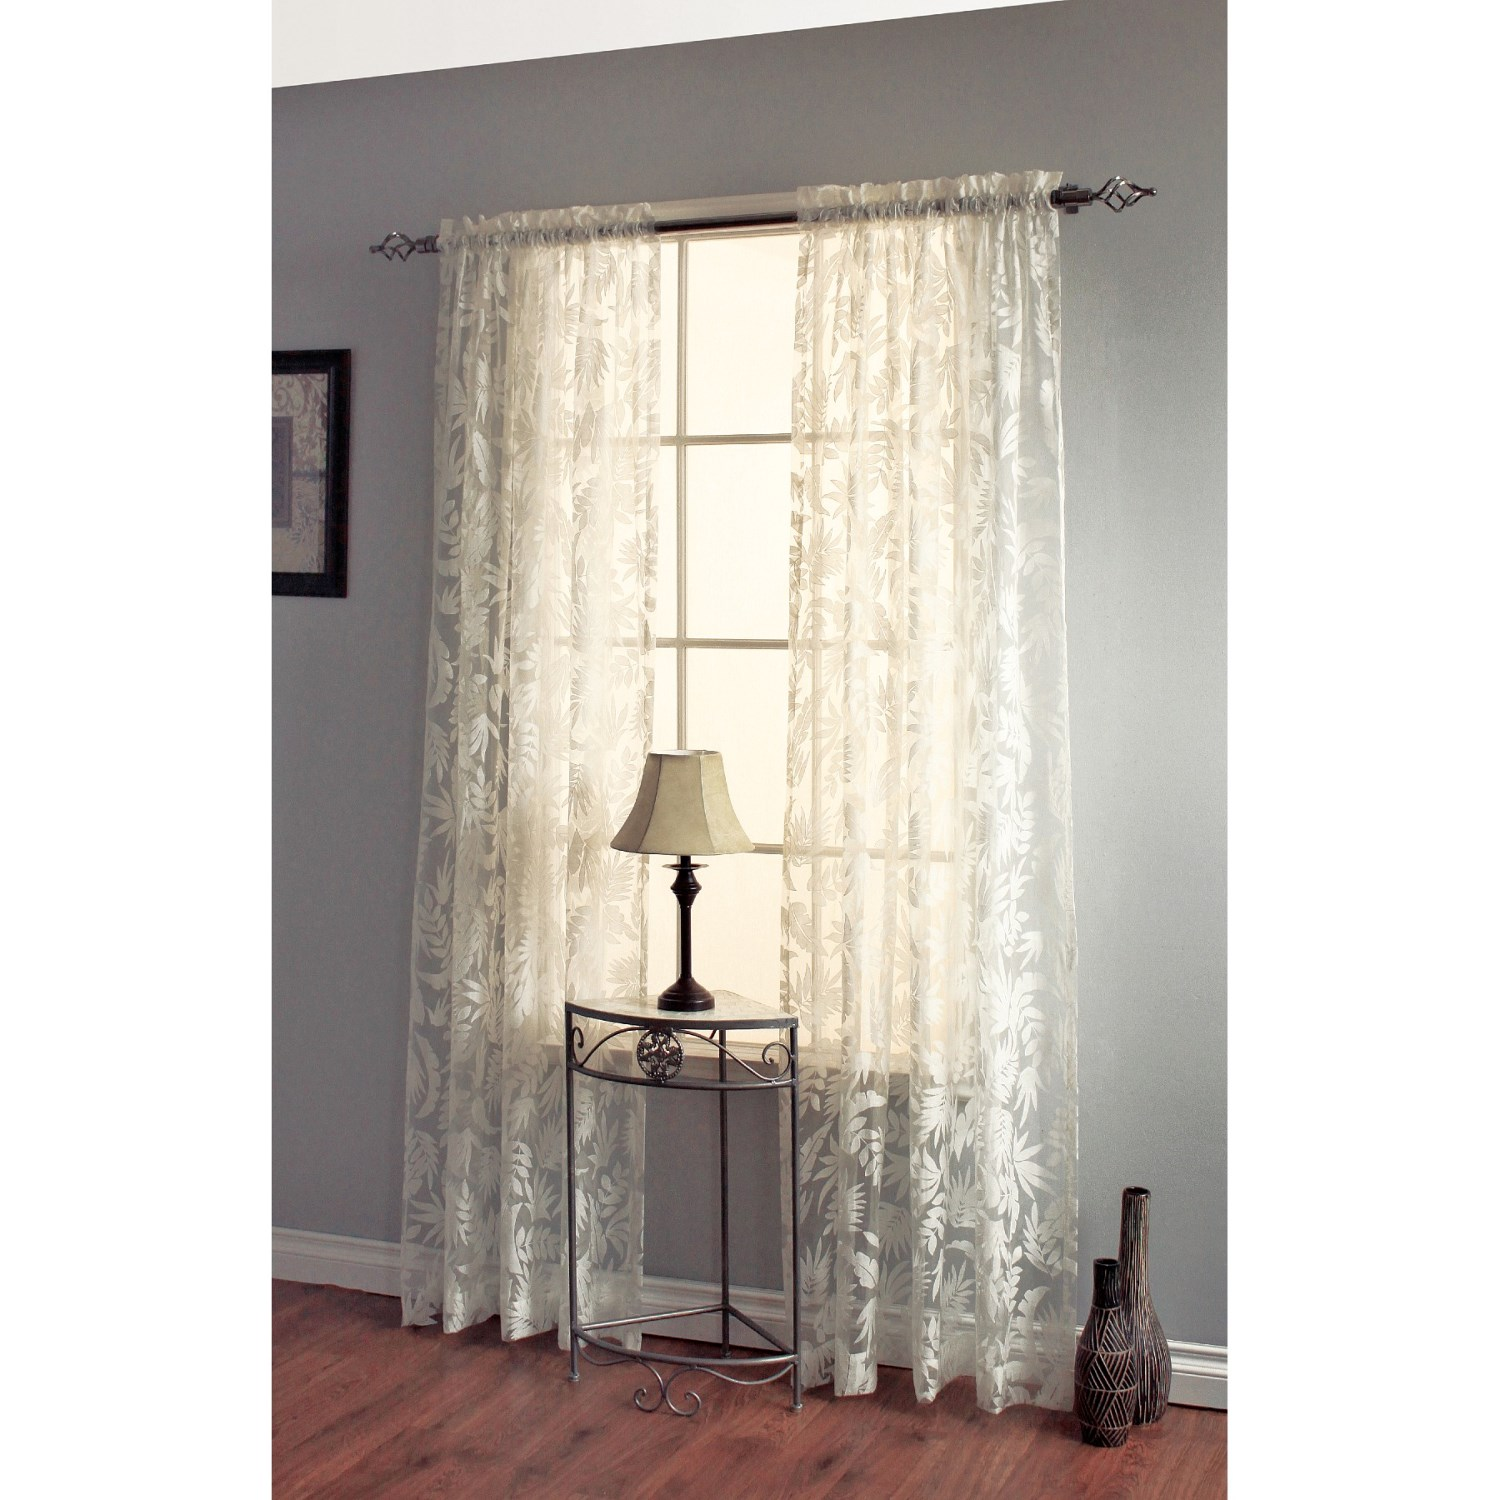 decor premier leaves botanical burnout sheer curtains 84 rod pocket 4322t save 42. Black Bedroom Furniture Sets. Home Design Ideas